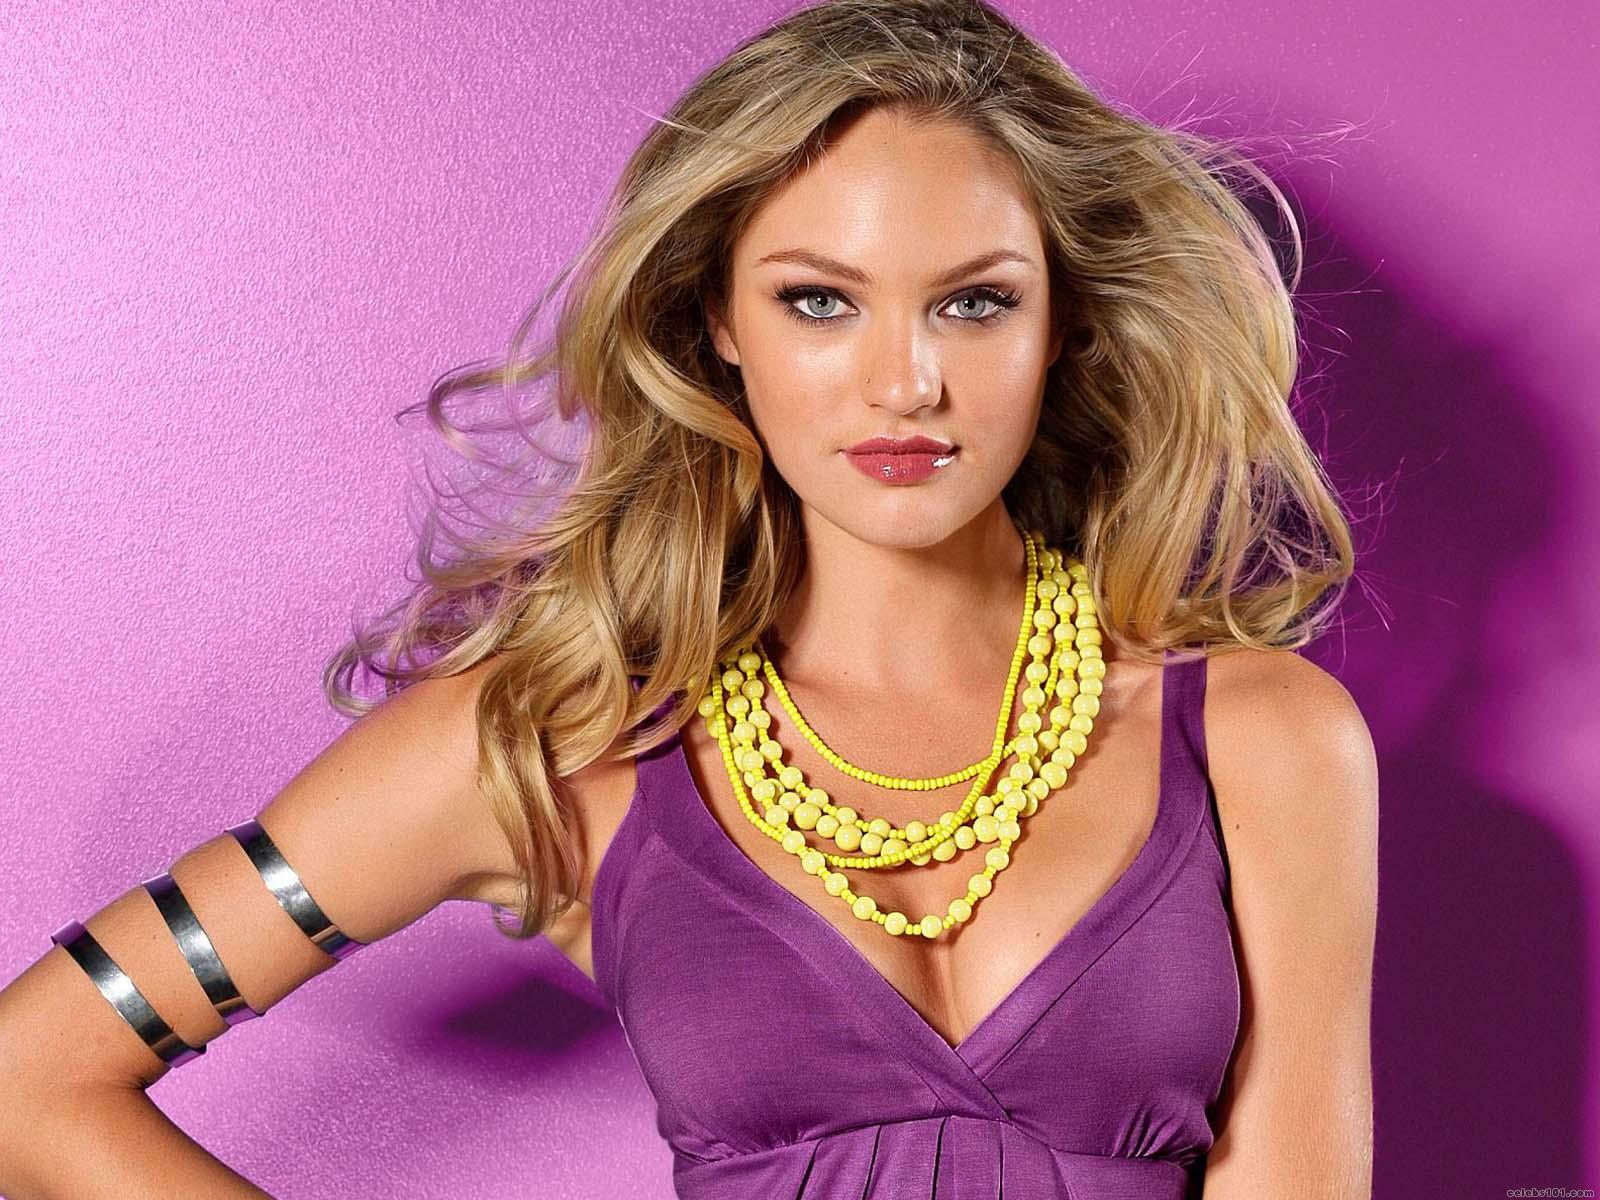 My Toroool Hd Wallpaper Of Candice Swanepoel